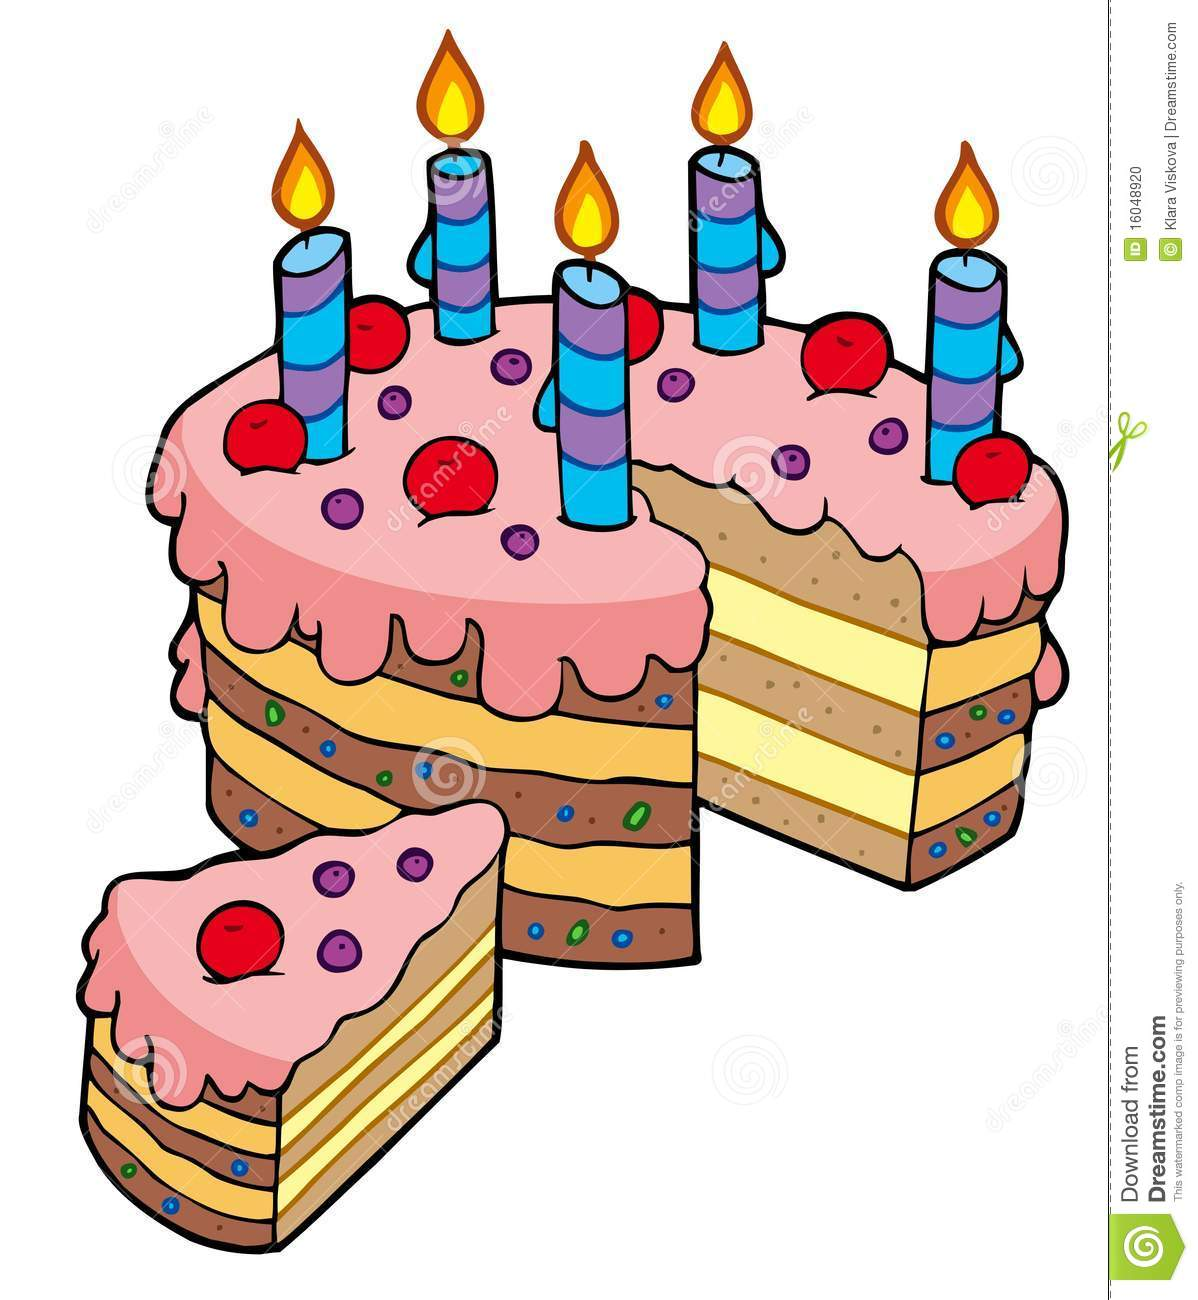 Cartoon Sliced Birthday Cake Stock Vector Illustration of clipart